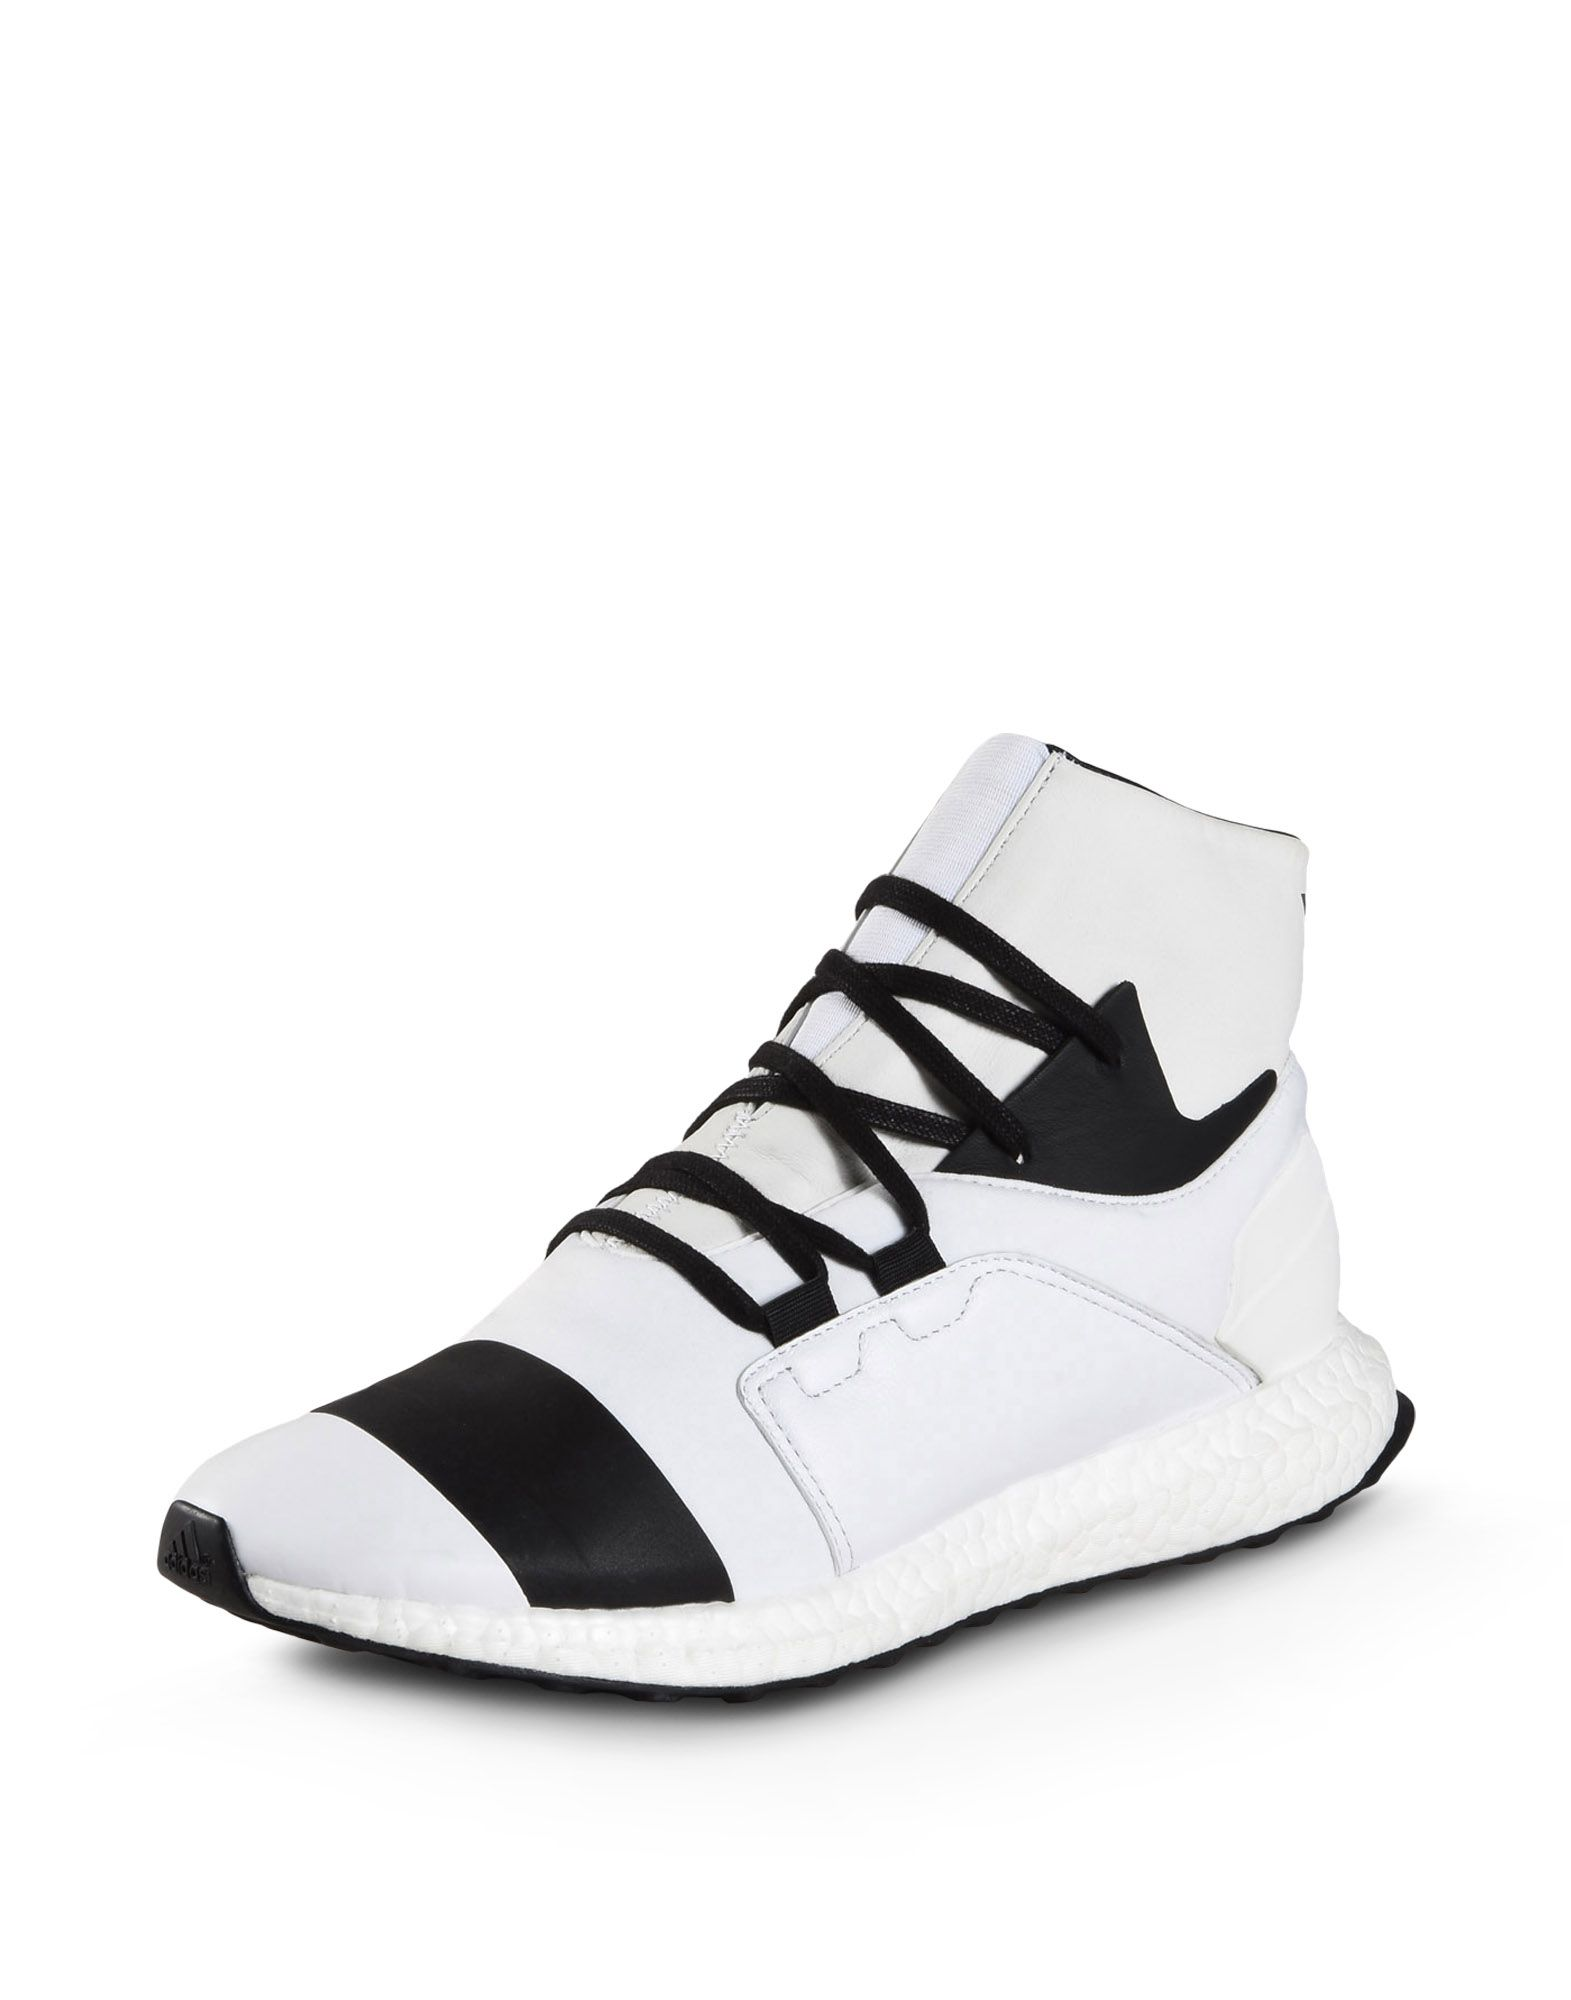 Y 3 KOZOKO HIGH CHAUSSURES homme Y 3 adidas | Y 3 COLLECTion